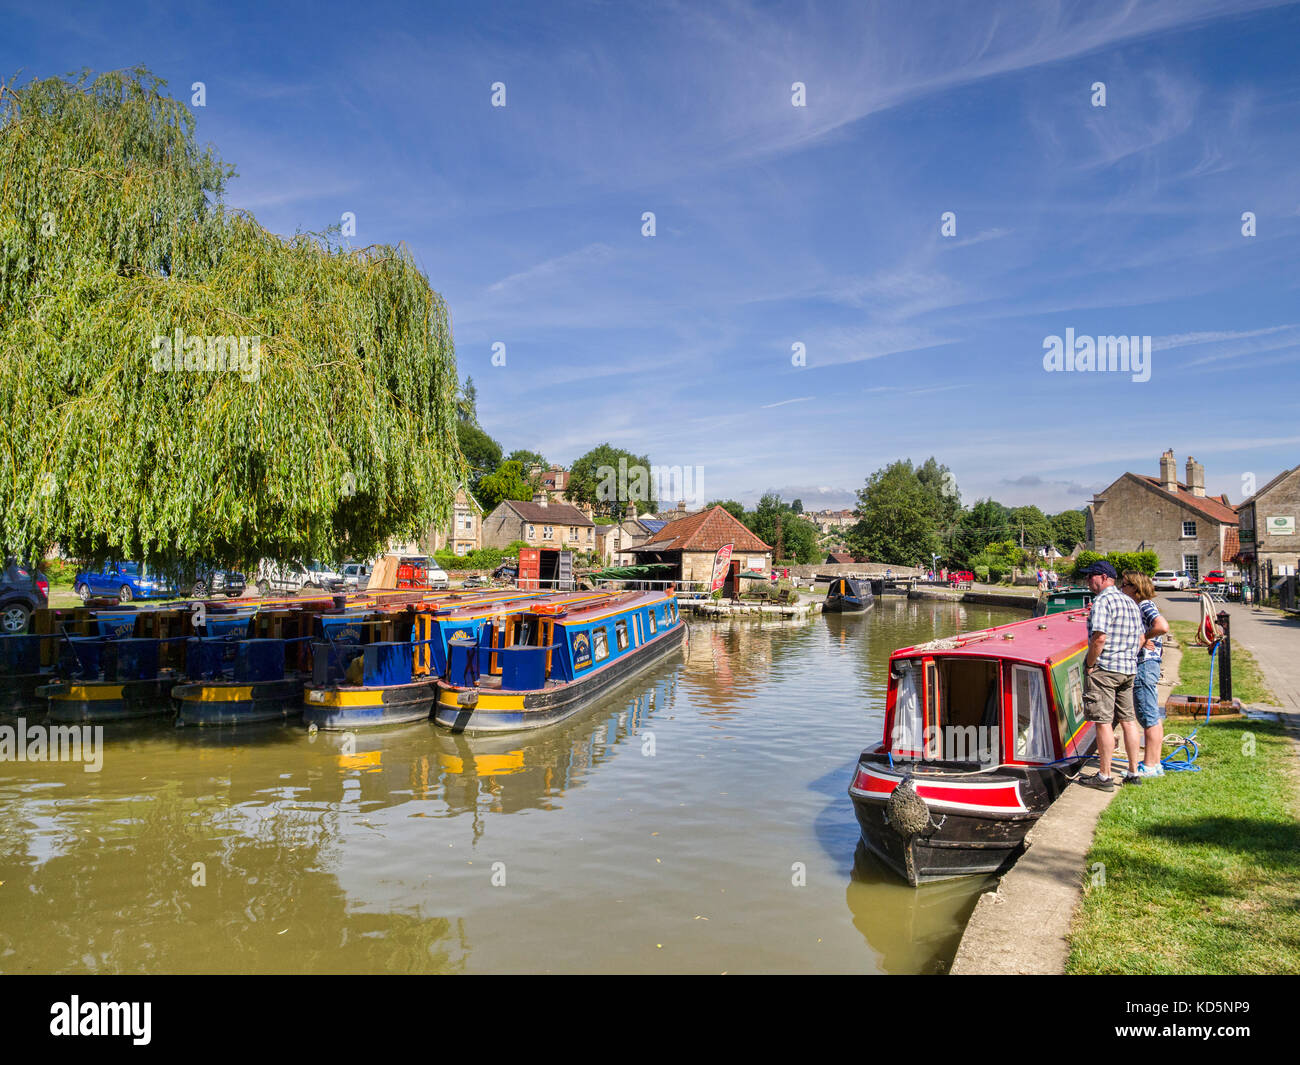 7 July 2017: Bradford on Avon, Somerset, England, UK - Bradford on Avon Wharf, a typical canal basin with colourful - Stock Image